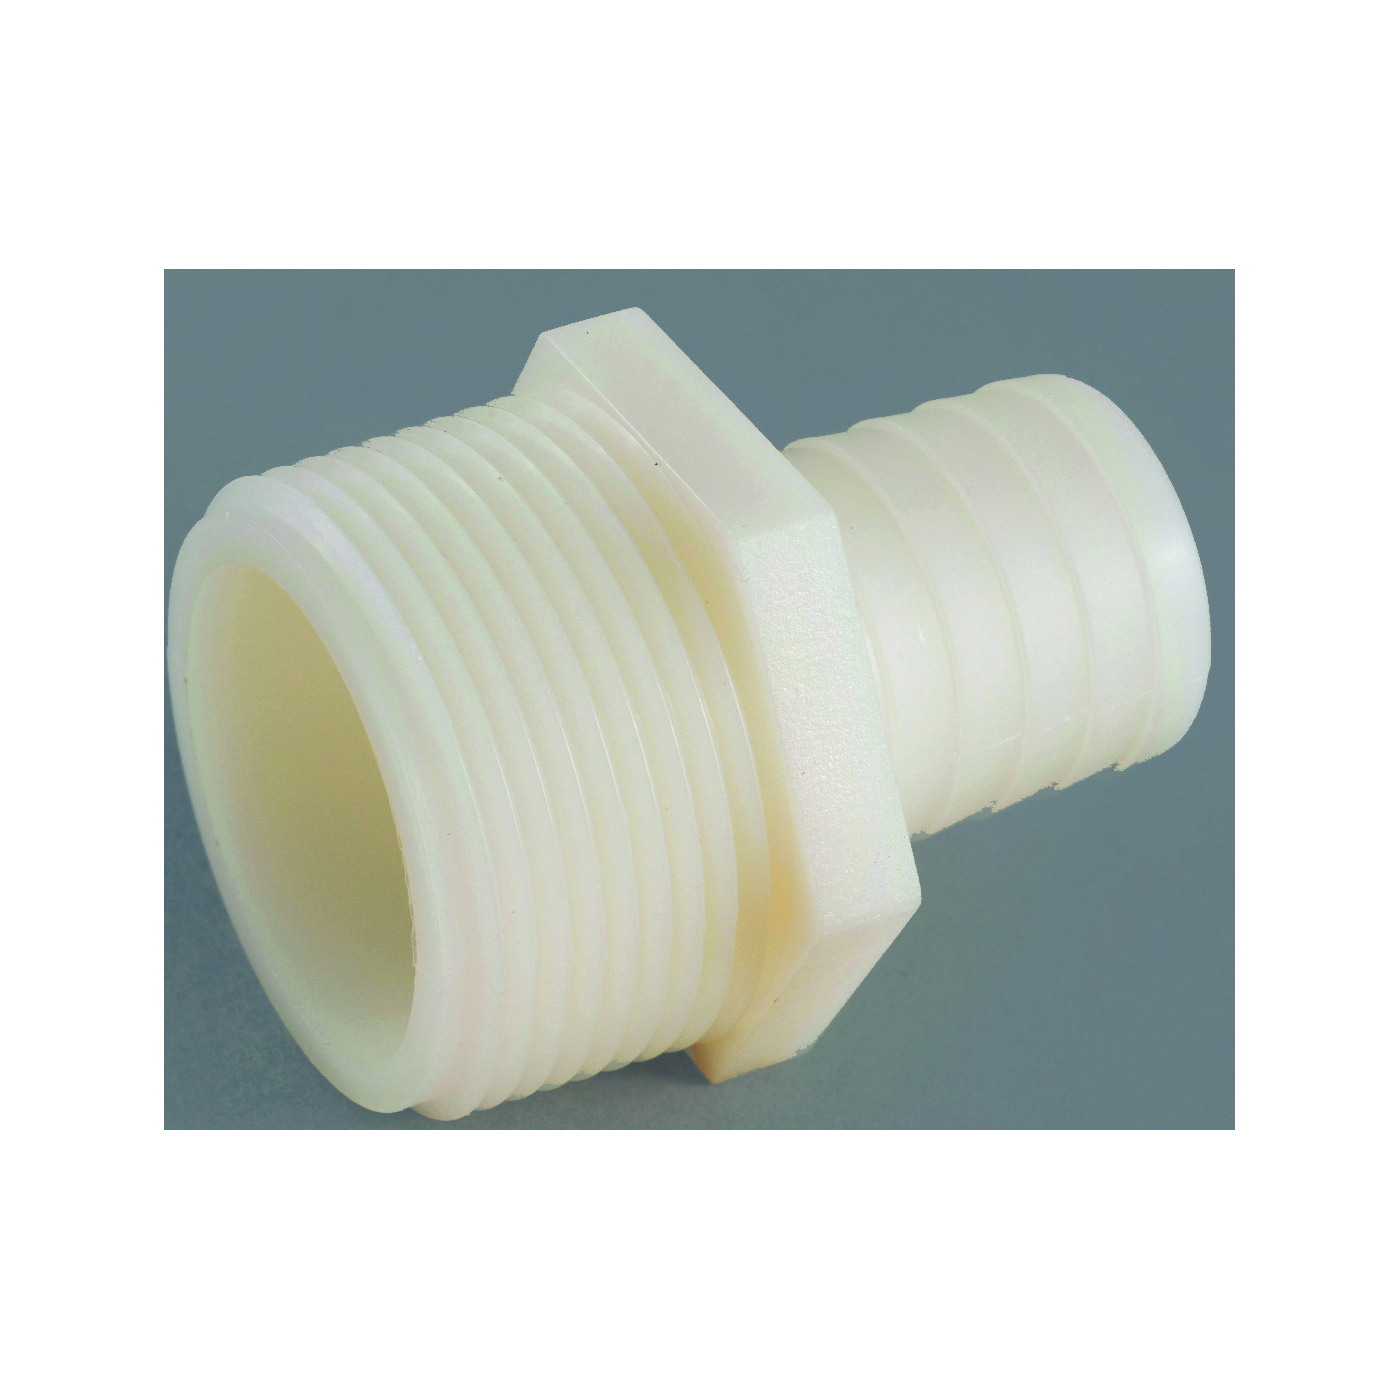 Picture of Anderson Metals 53701-0806 Hose Adapter, 3/8 in, Barb, 1/2 in, MIP, 150 psi Pressure, Nylon